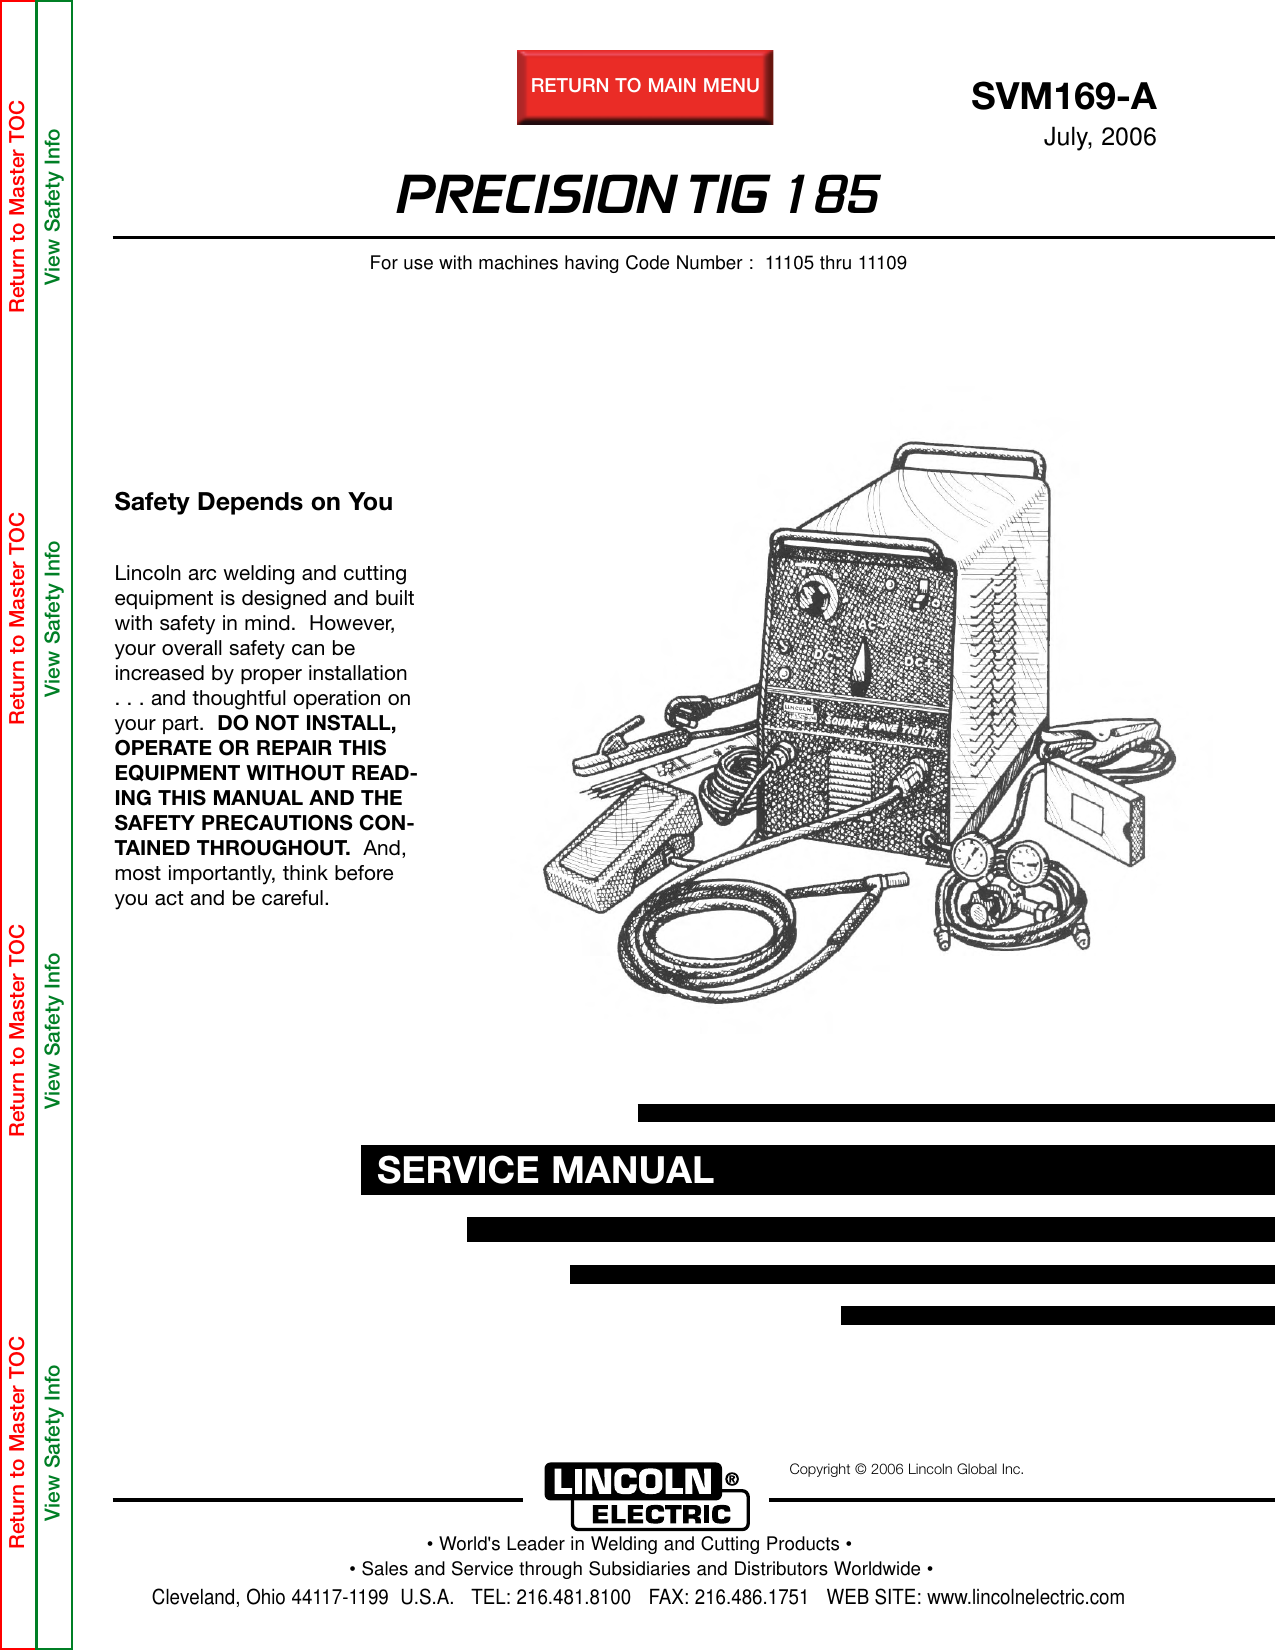 Lincoln Electric Precision Tig 185 Svm169 A Users Manual Triac How To Design Snubber For Optotriac Electrical Engineering